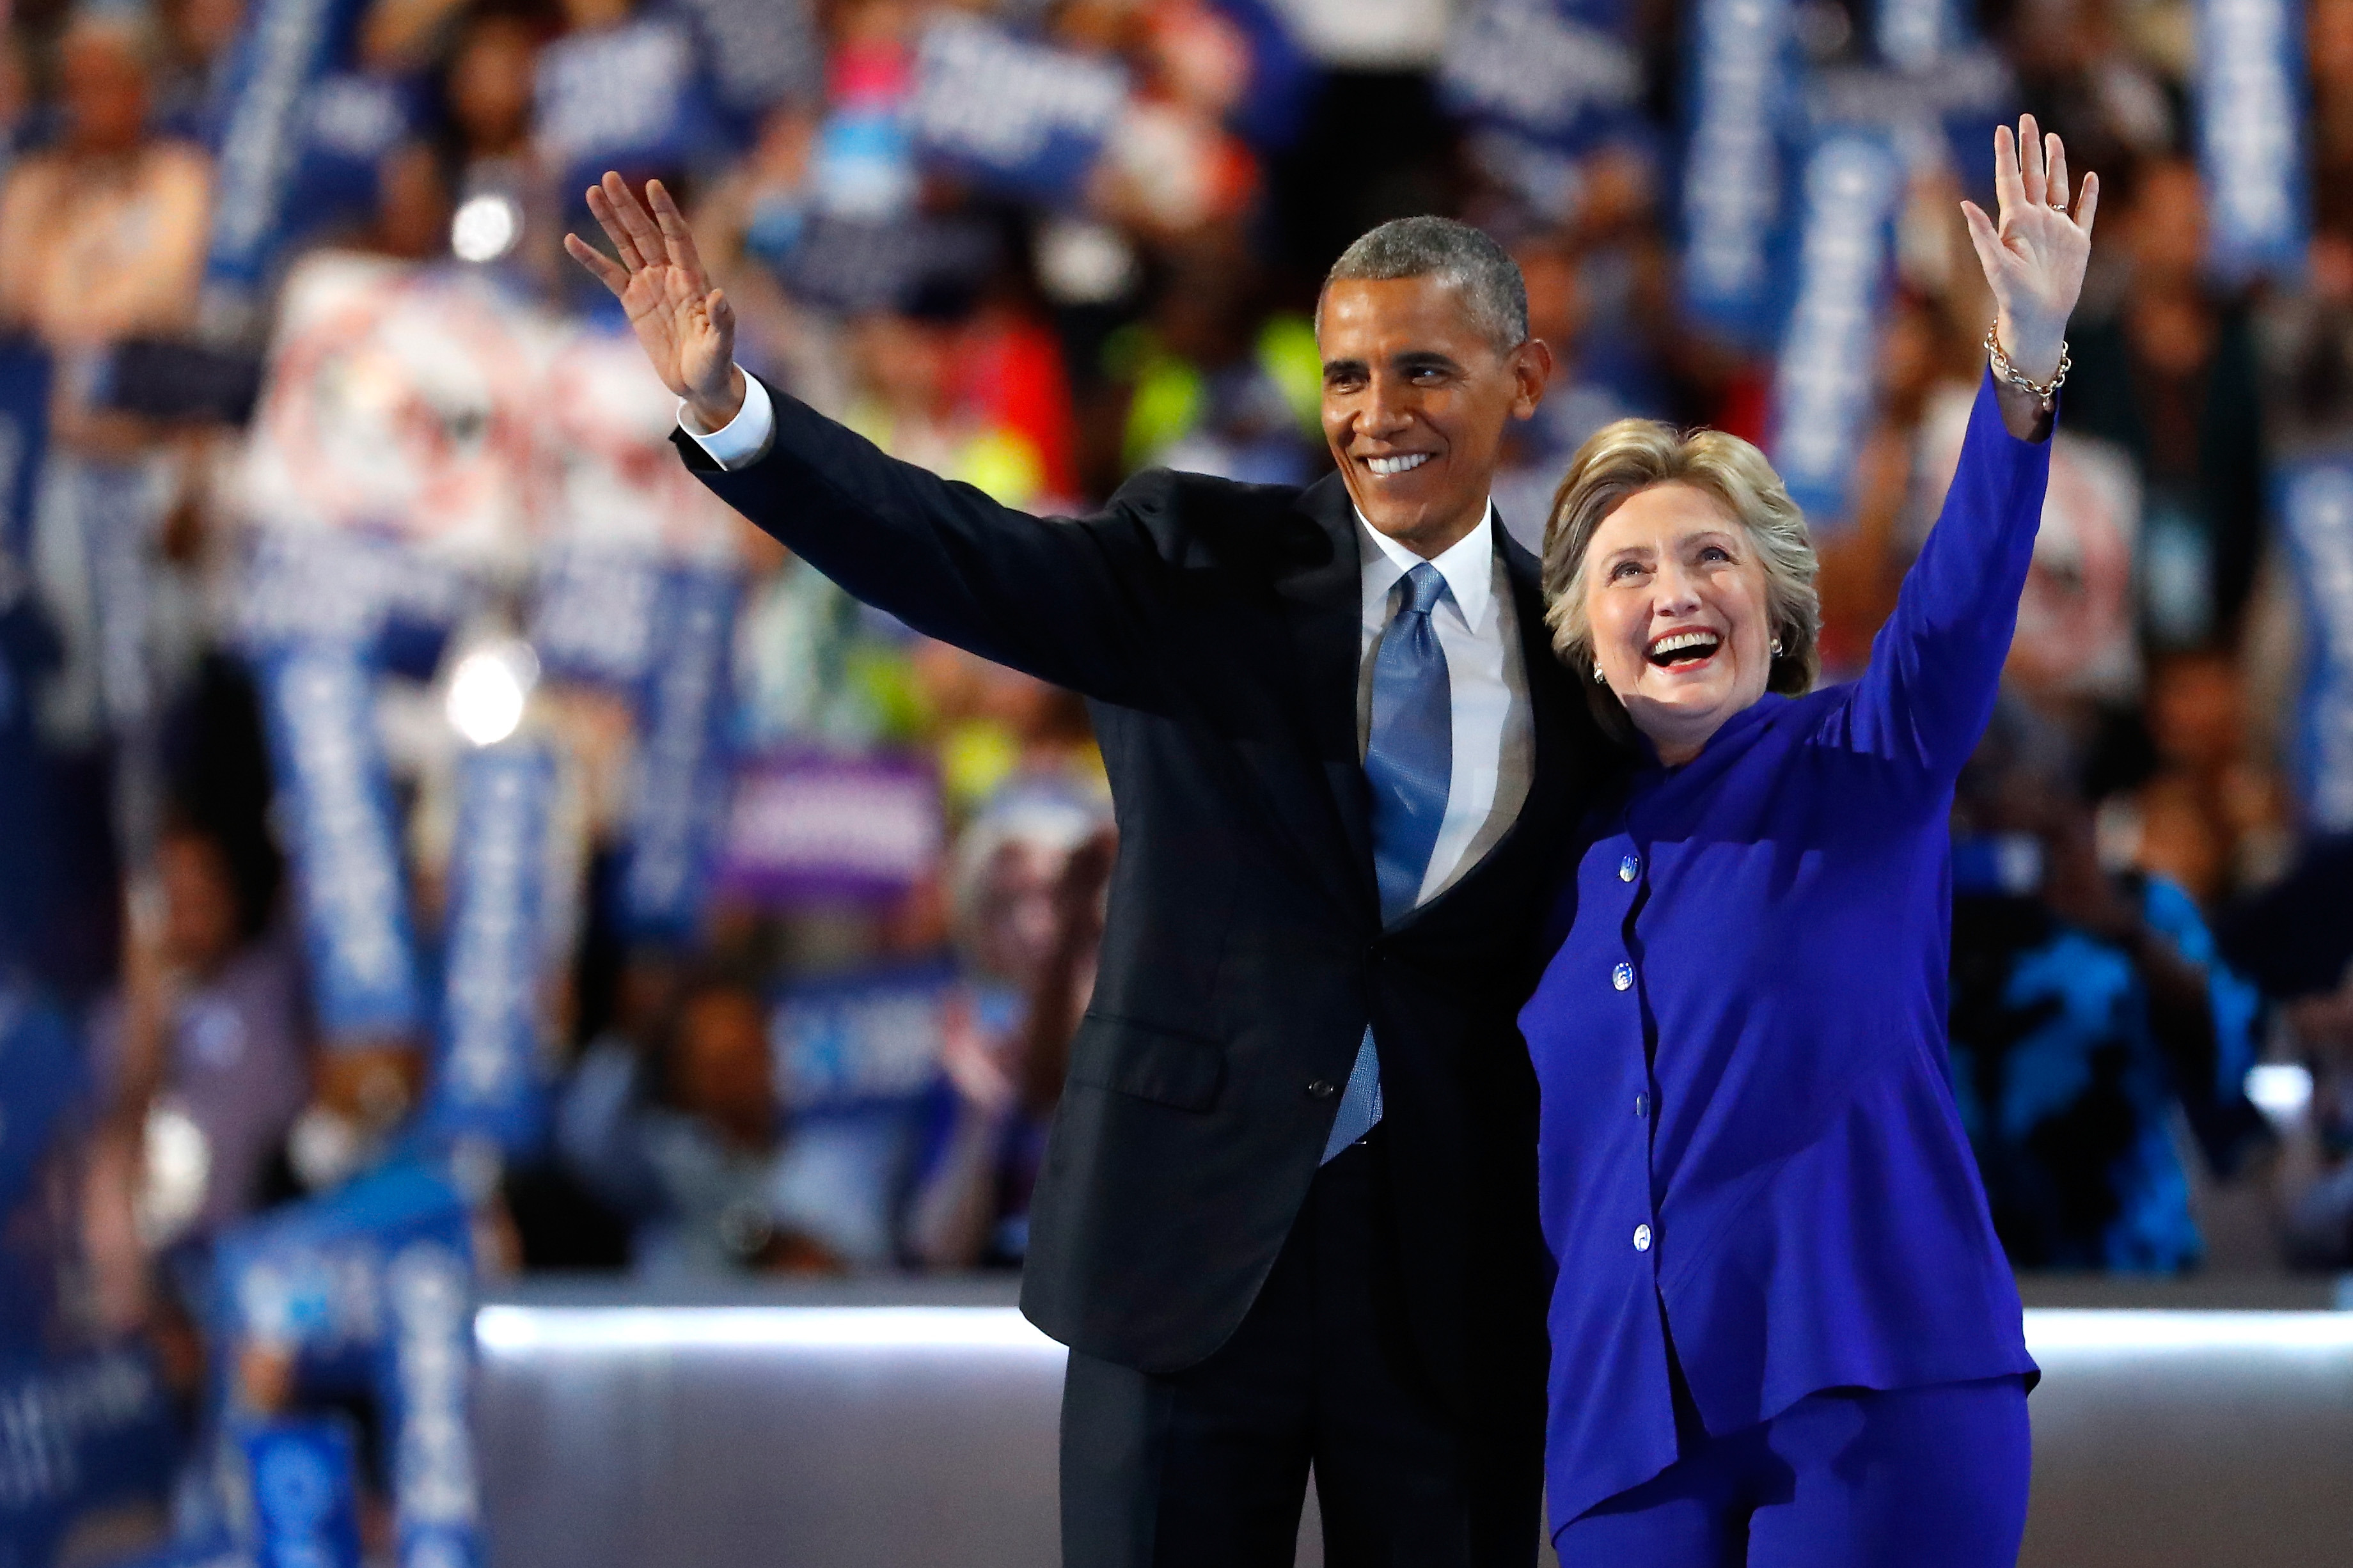 PHILADELPHIA, PA - JULY 27:  US President Barack Obama and Democratic presidential candidate Hillary Clinton wave to the crowd on the third day of the Democratic National Convention at the Wells Fargo Center, July 27, 2016 in Philadelphia, Pennsylvania. Democratic presidential candidate Hillary Clinton received the number of votes needed to secure the party's nomination. An estimated 50,000 people are expected in Philadelphia, including hundreds of protesters and members of the media. The four-day Democratic National Convention kicked off July 25.  (Photo by Aaron P. Bernstein/Getty Images)